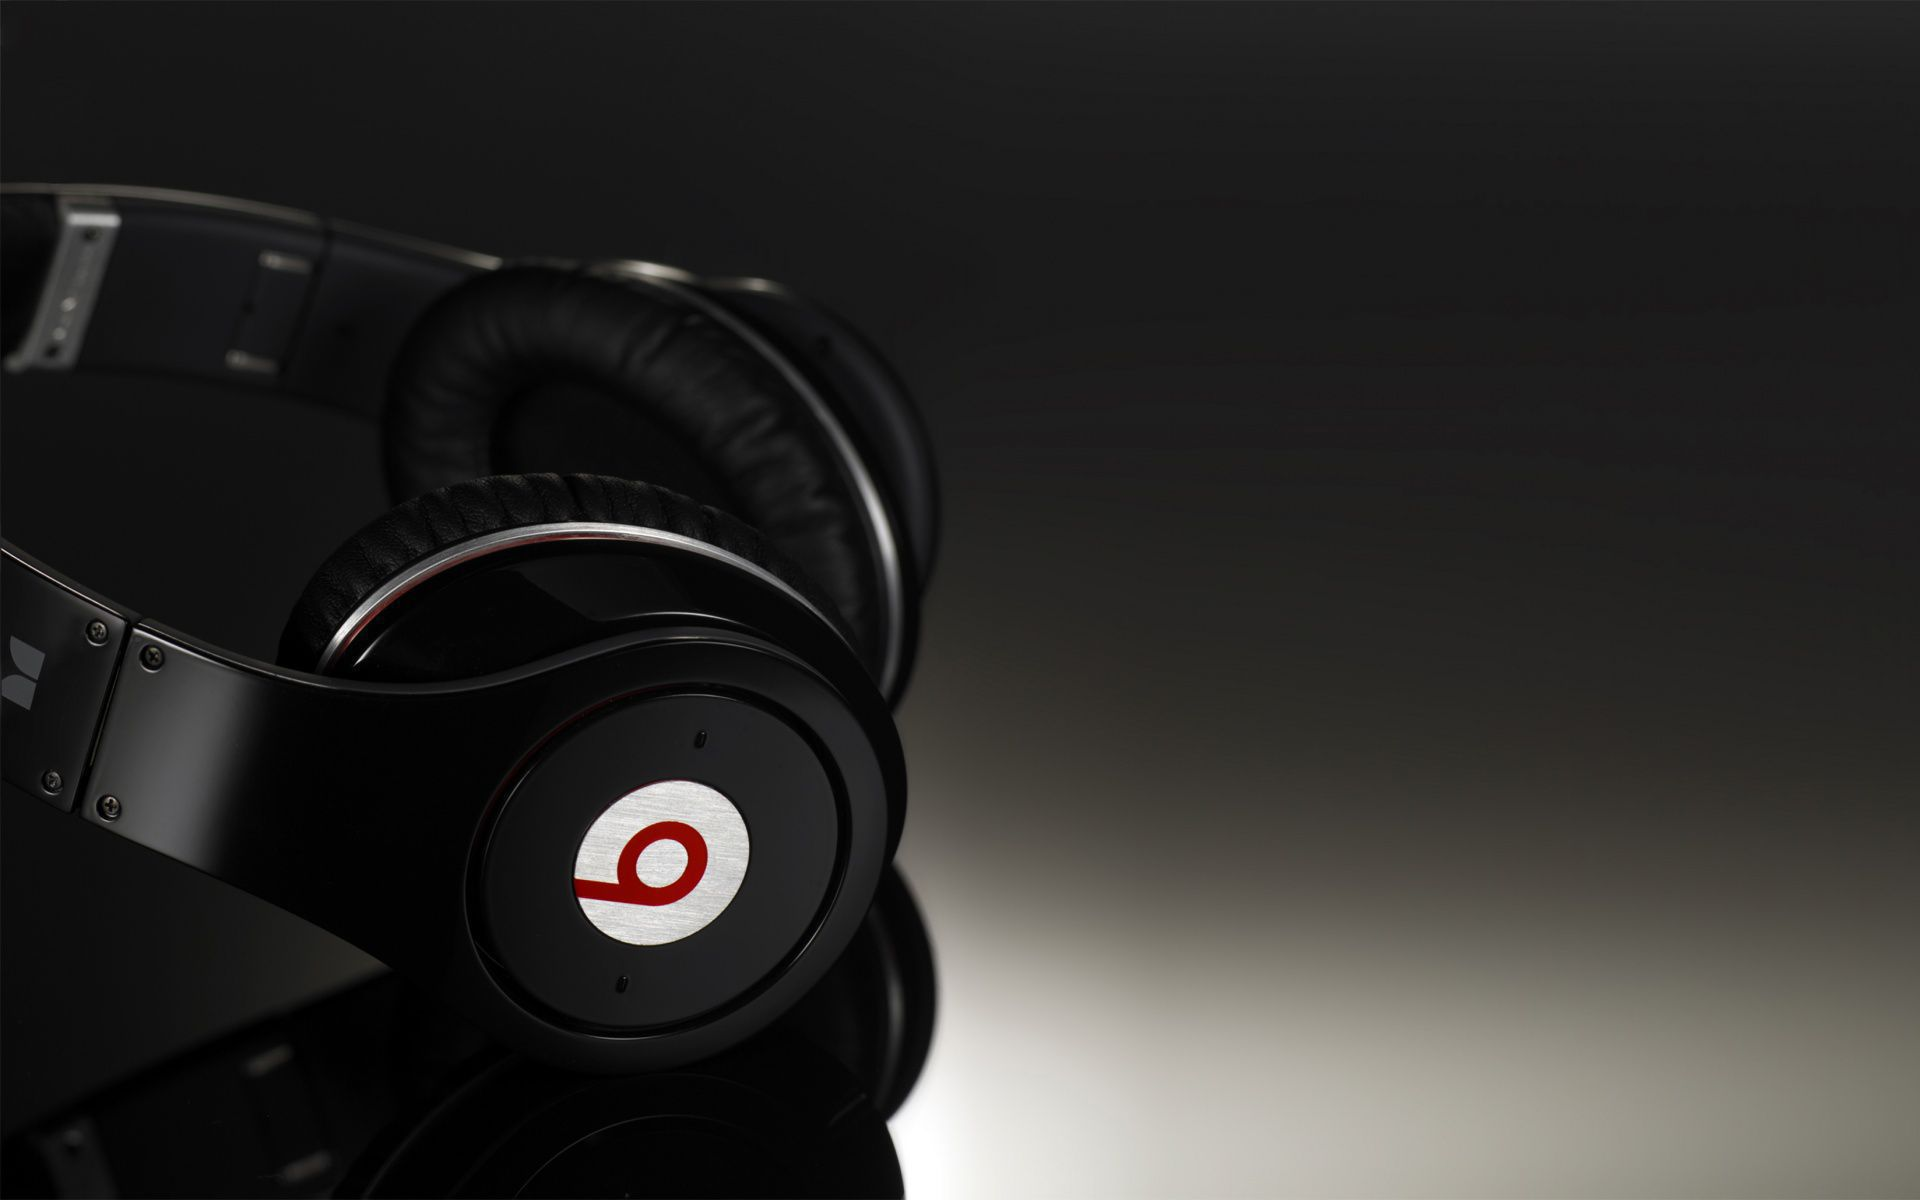 Beats By Dre Computer Wallpaper